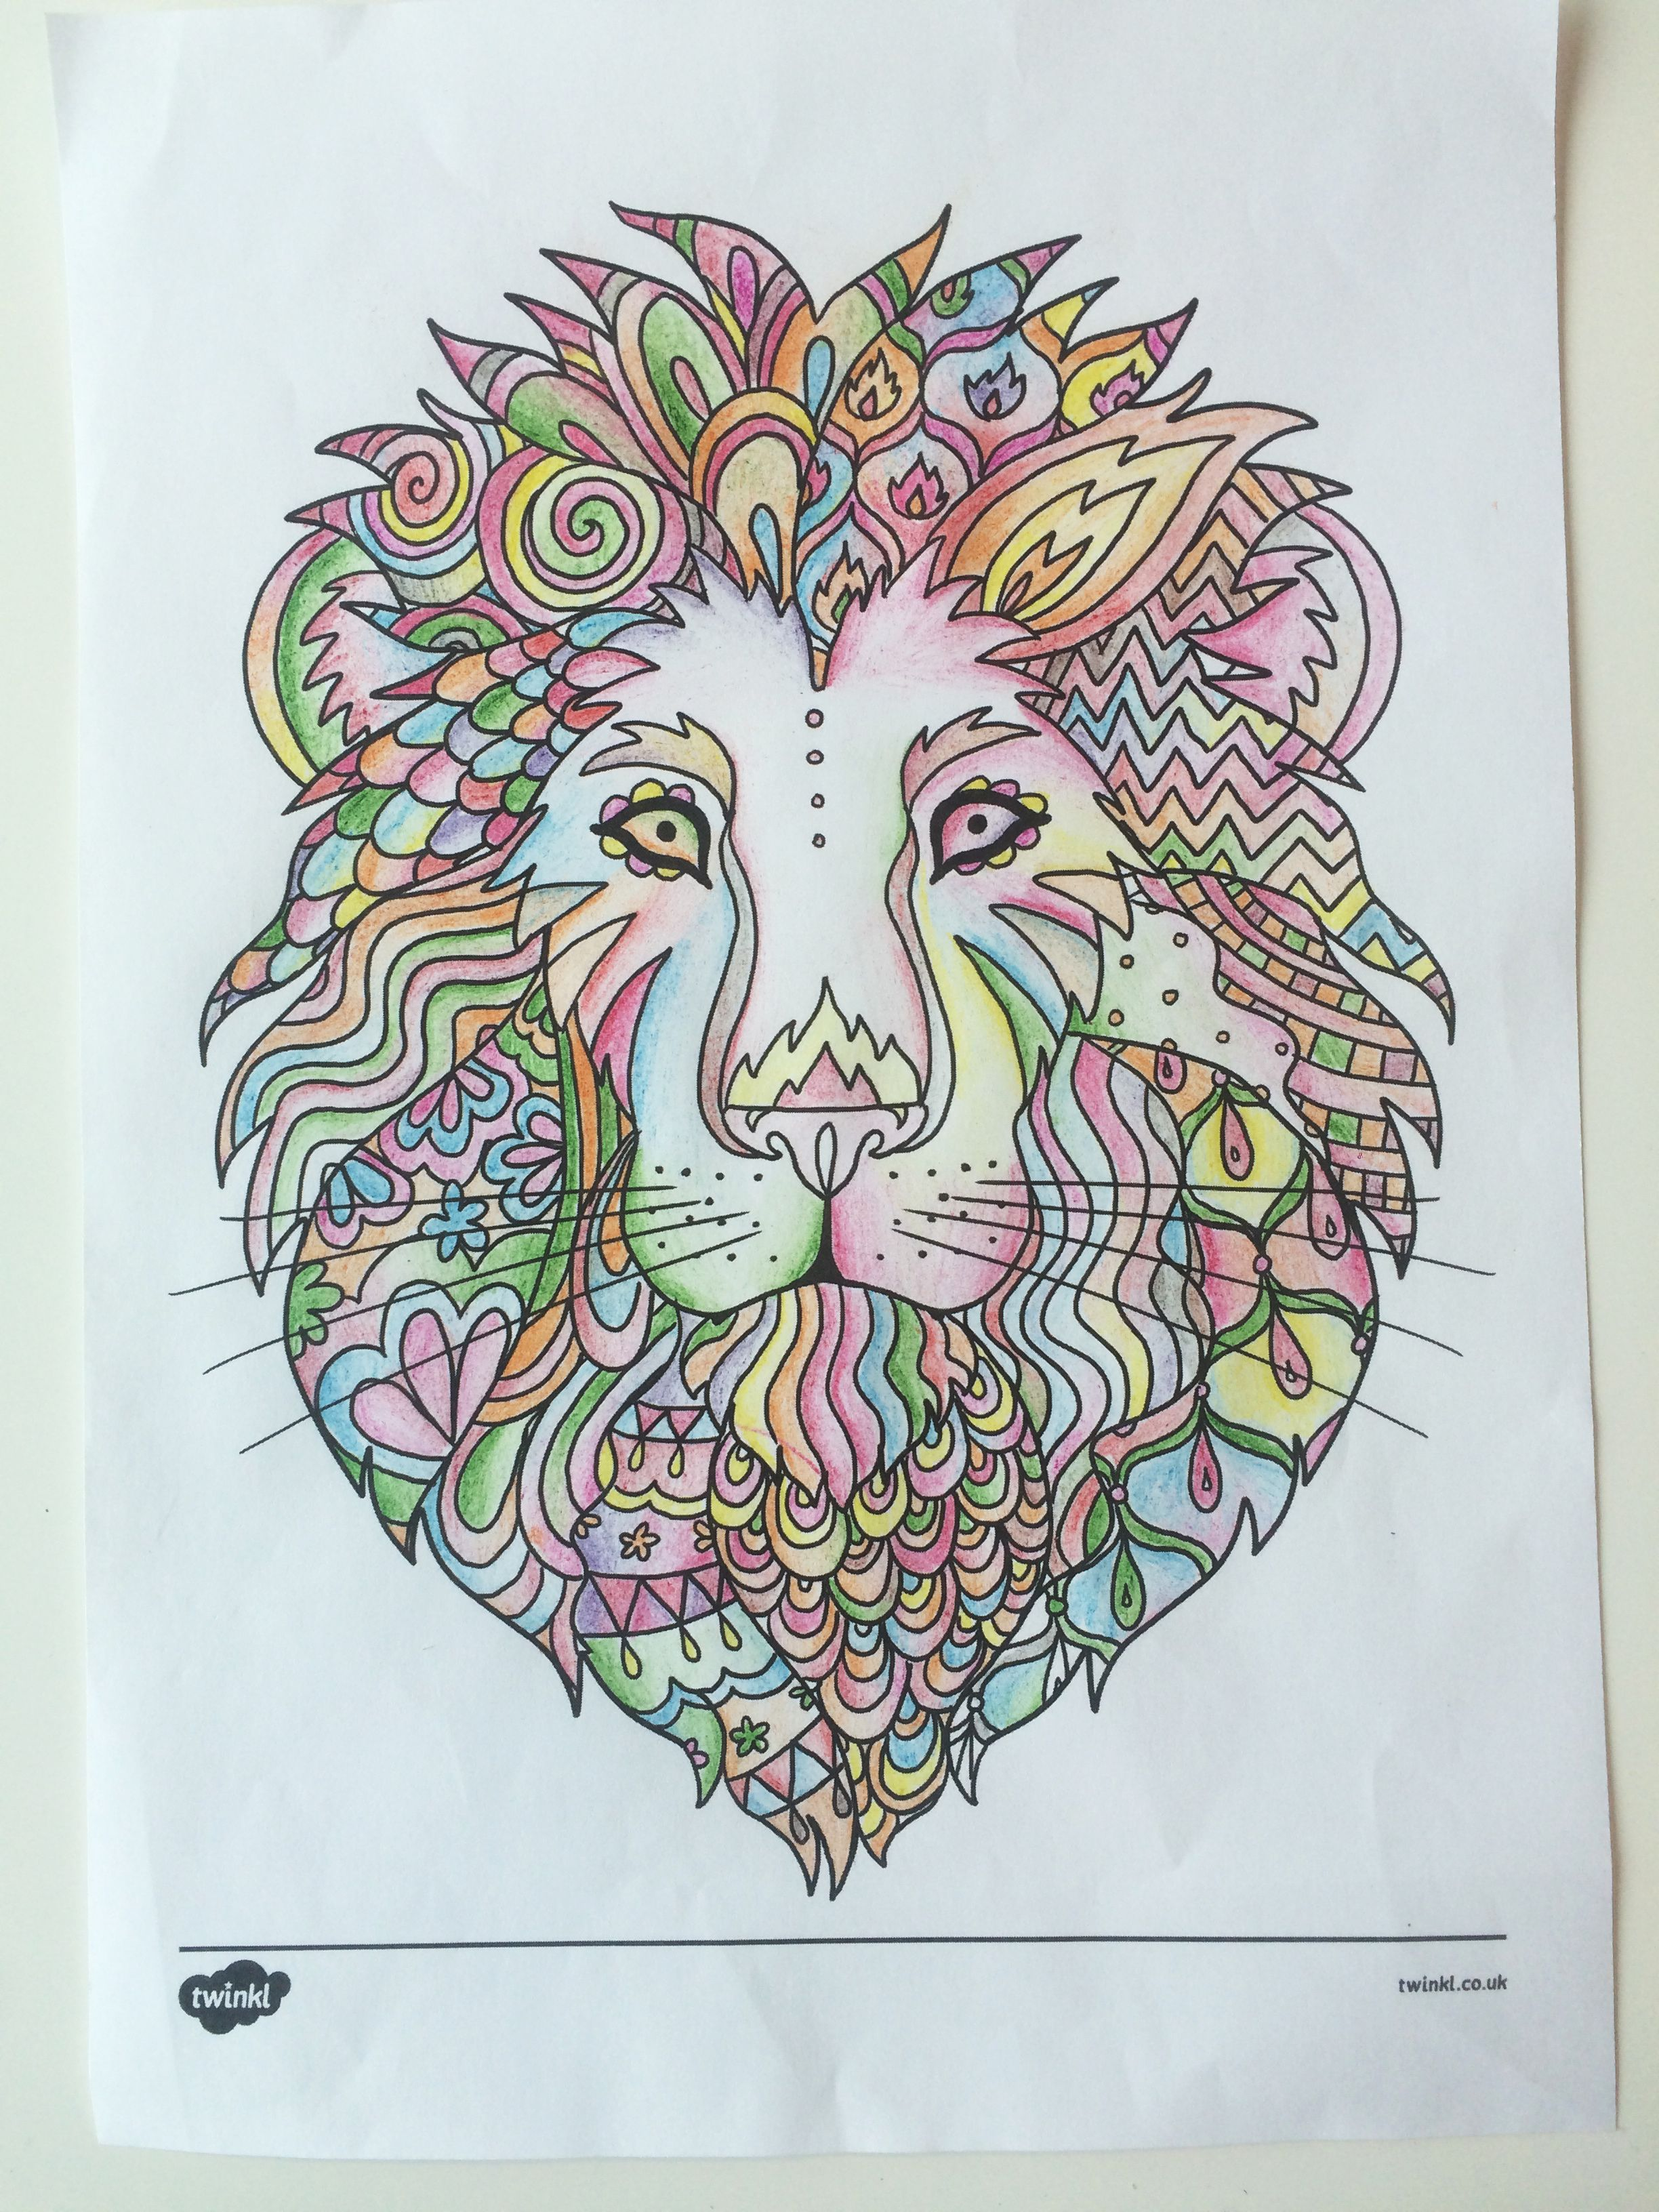 Christmas colouring in sheets twinkl - Gorgeous Mindfulness Colouring Sheets Great For Children And Adults Who Like Colouring In Perfect